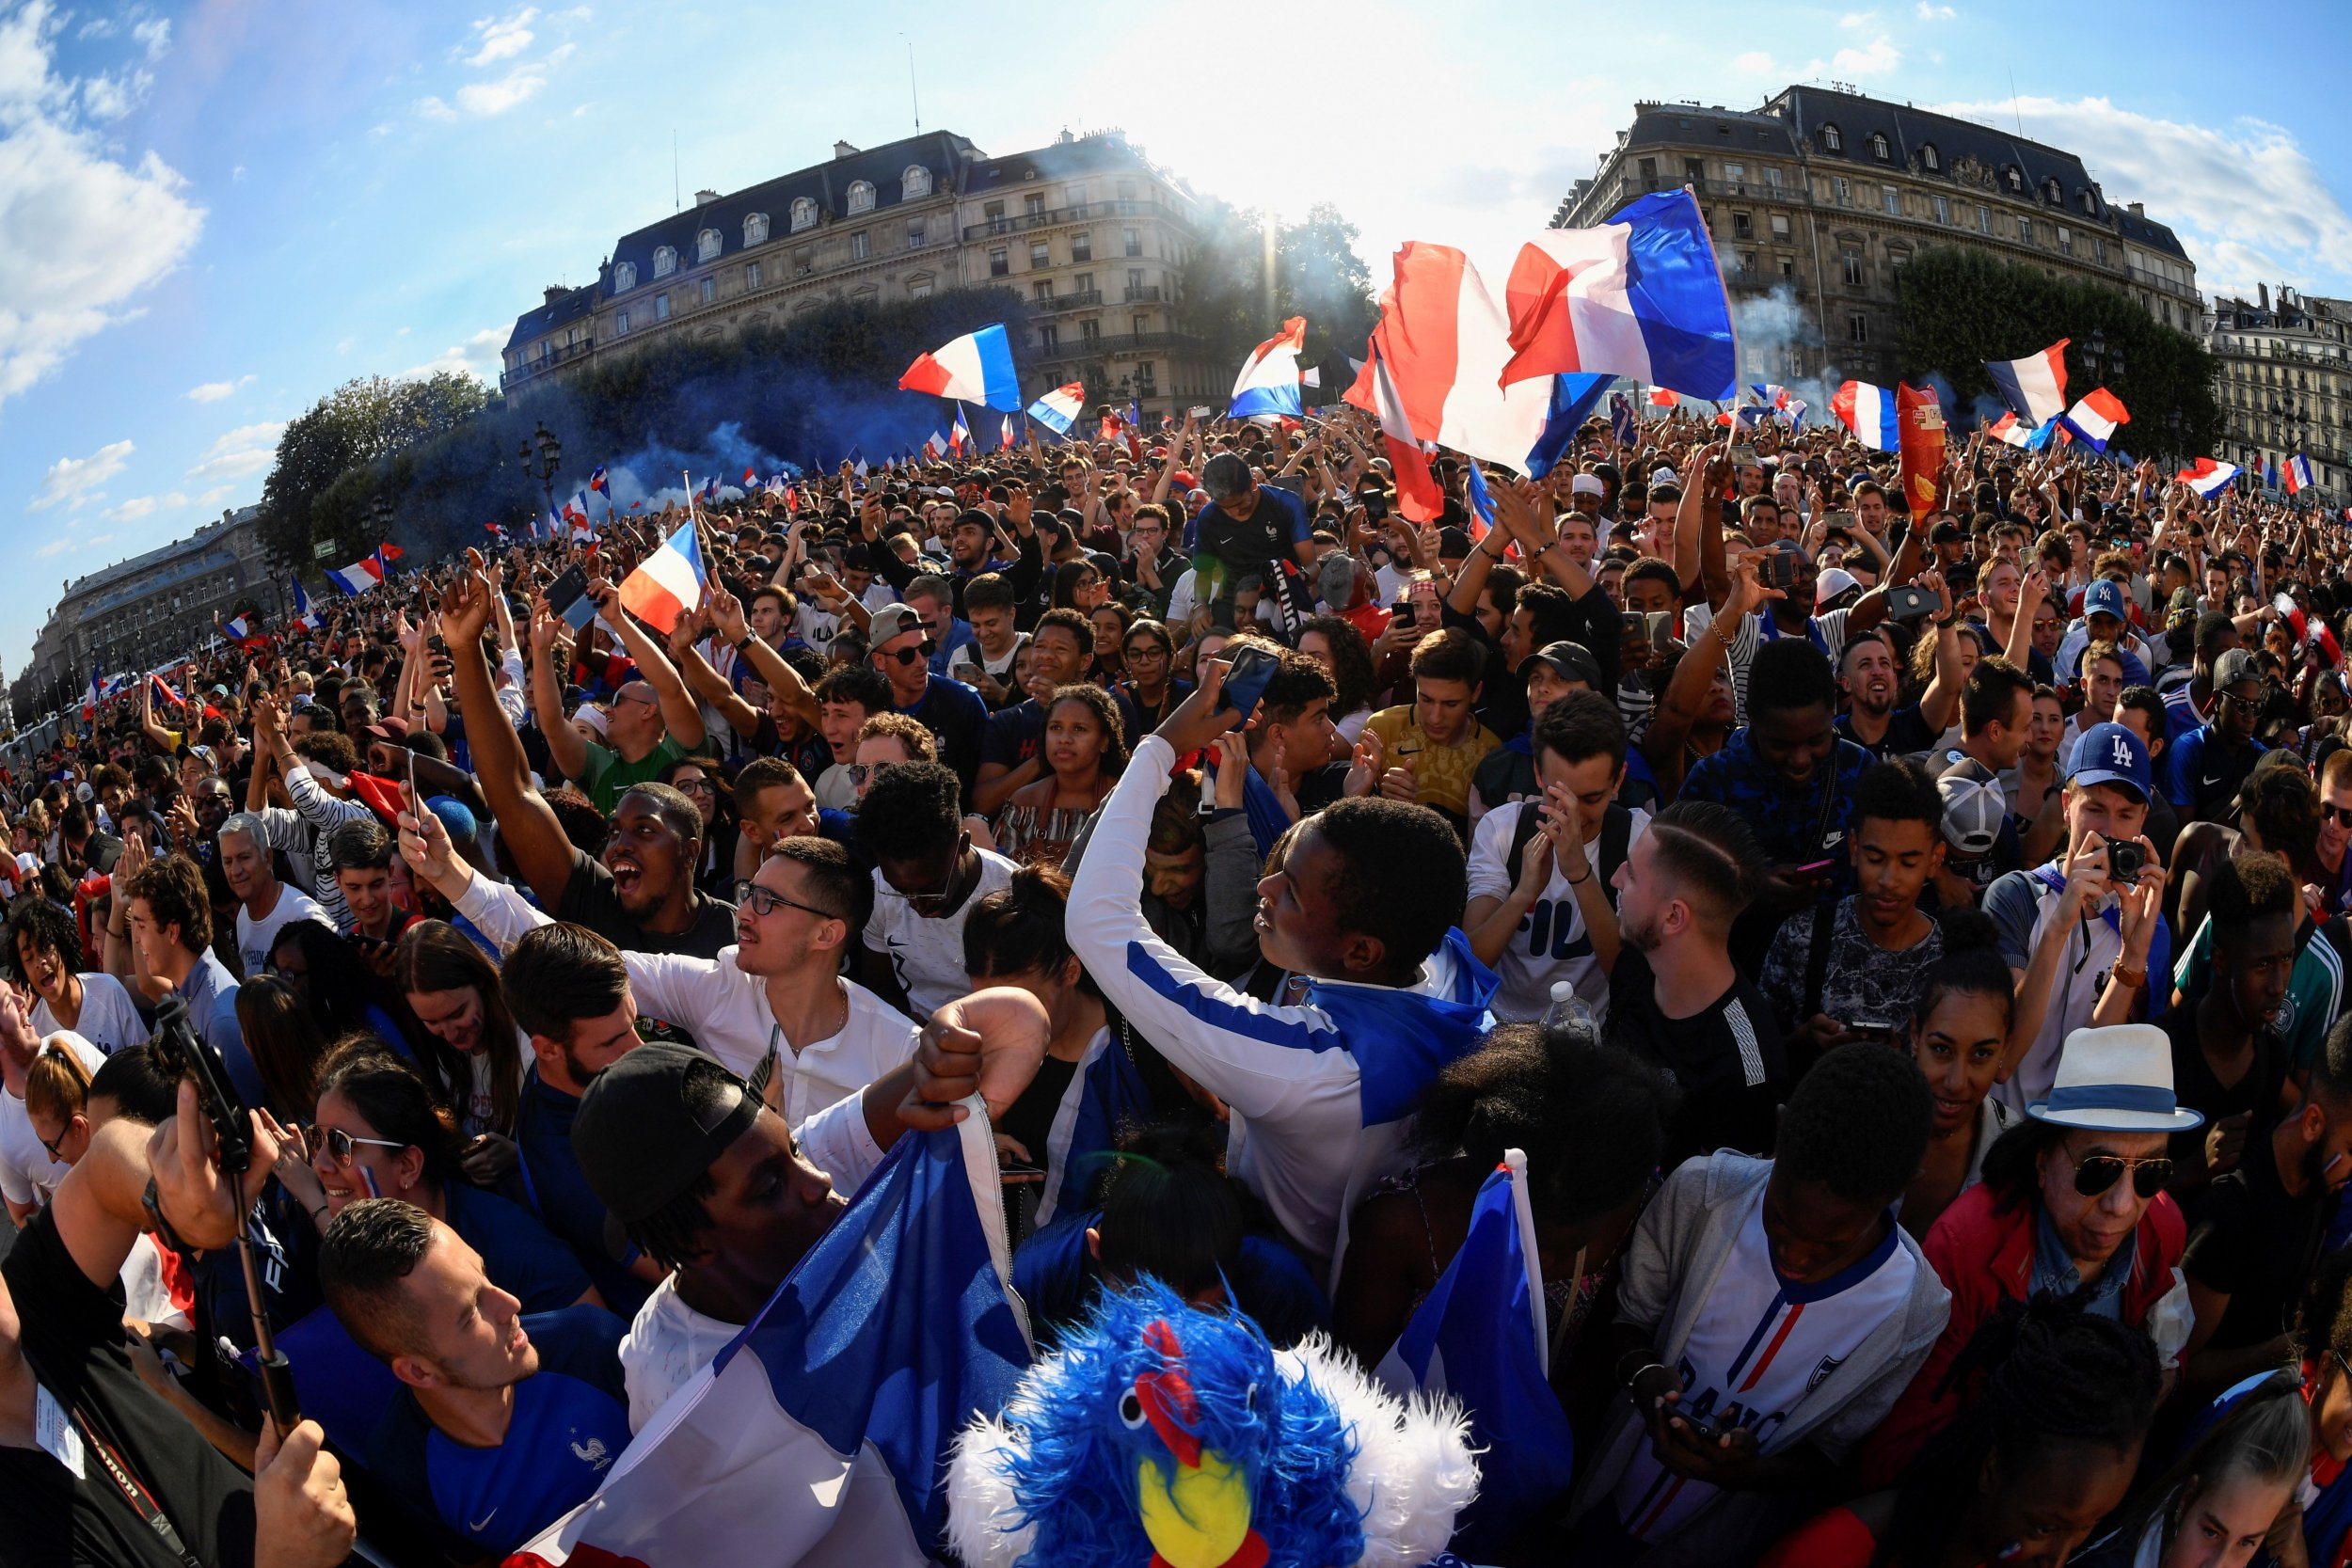 02_12_paris_fanzone